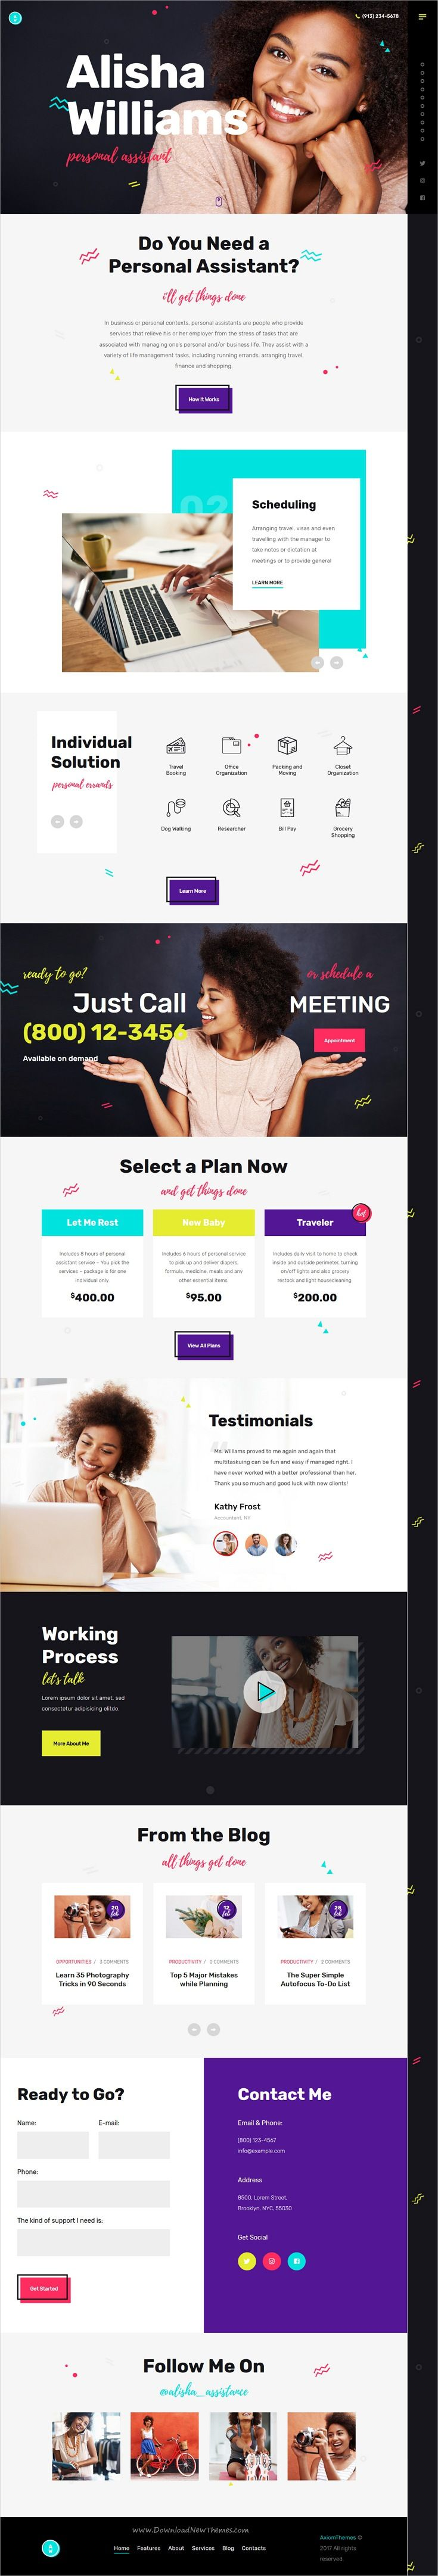 A.Williams is clean and modern design 3in1 responsive #WordPress theme for personal #assistant and #administrative services website download now..